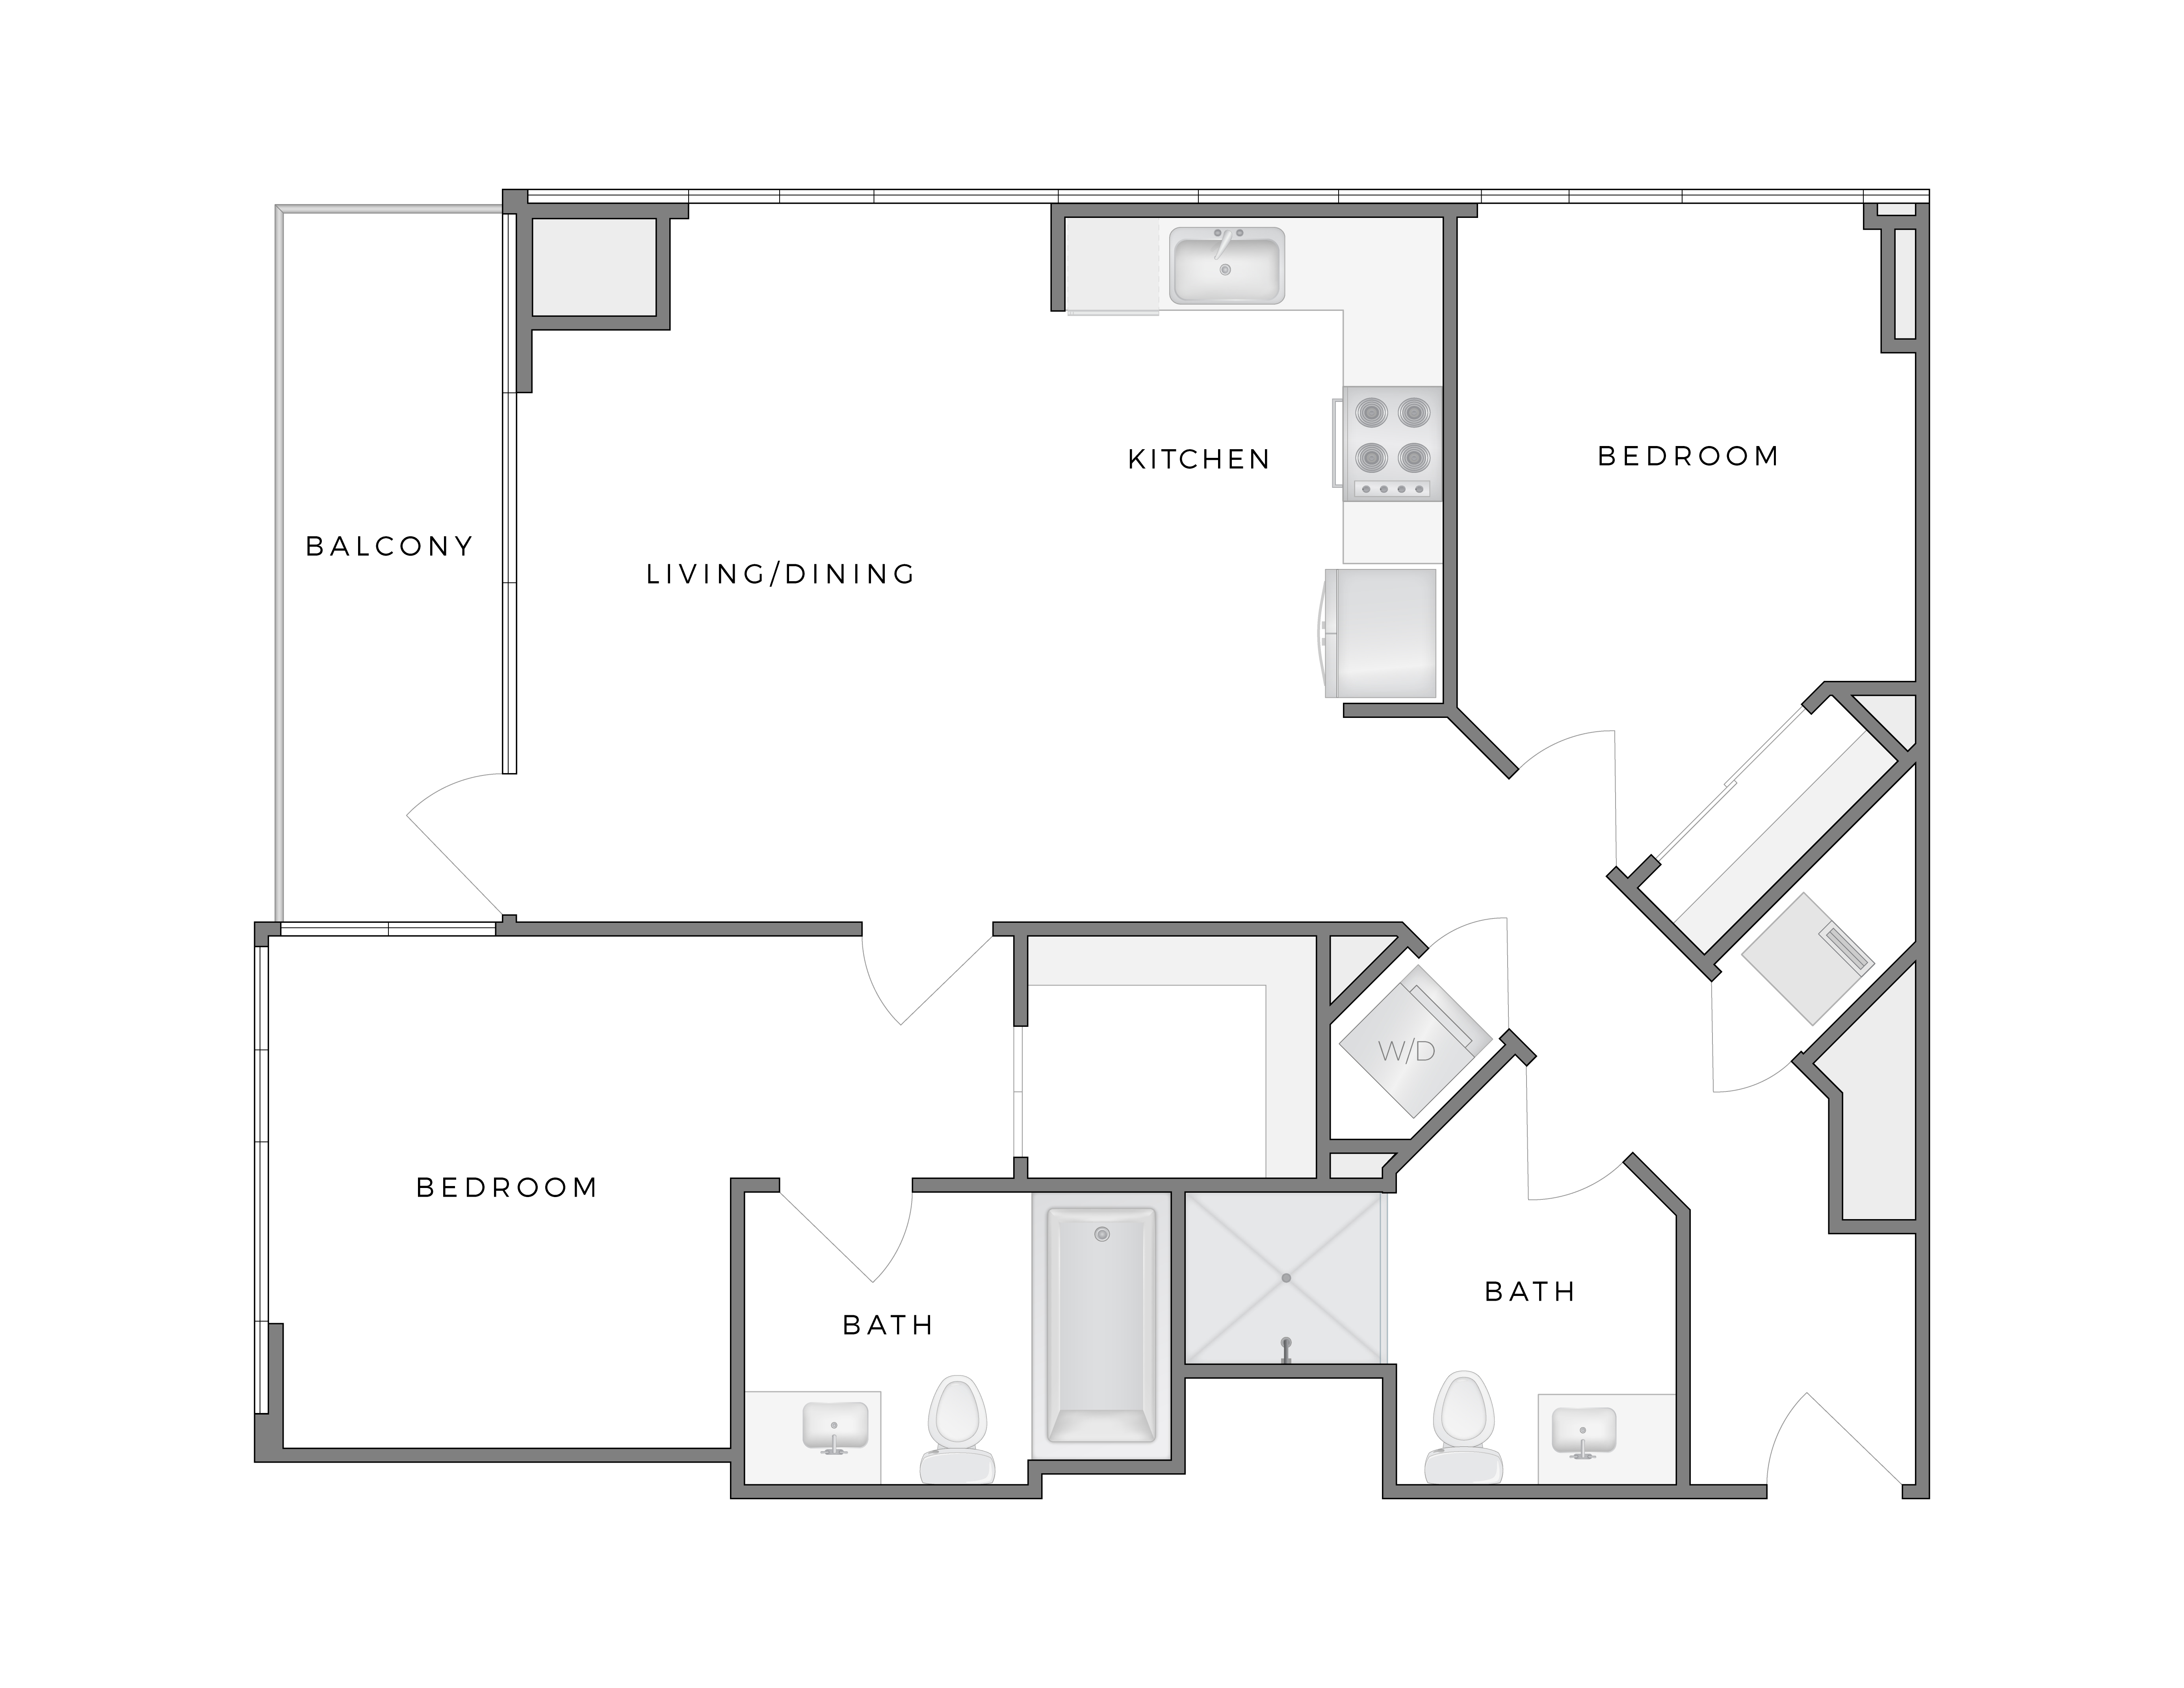 Atelier Hopper 1 apartment floorplan diagram with two bedrooms, two bathrooms, kitchen, living dining area, and patio